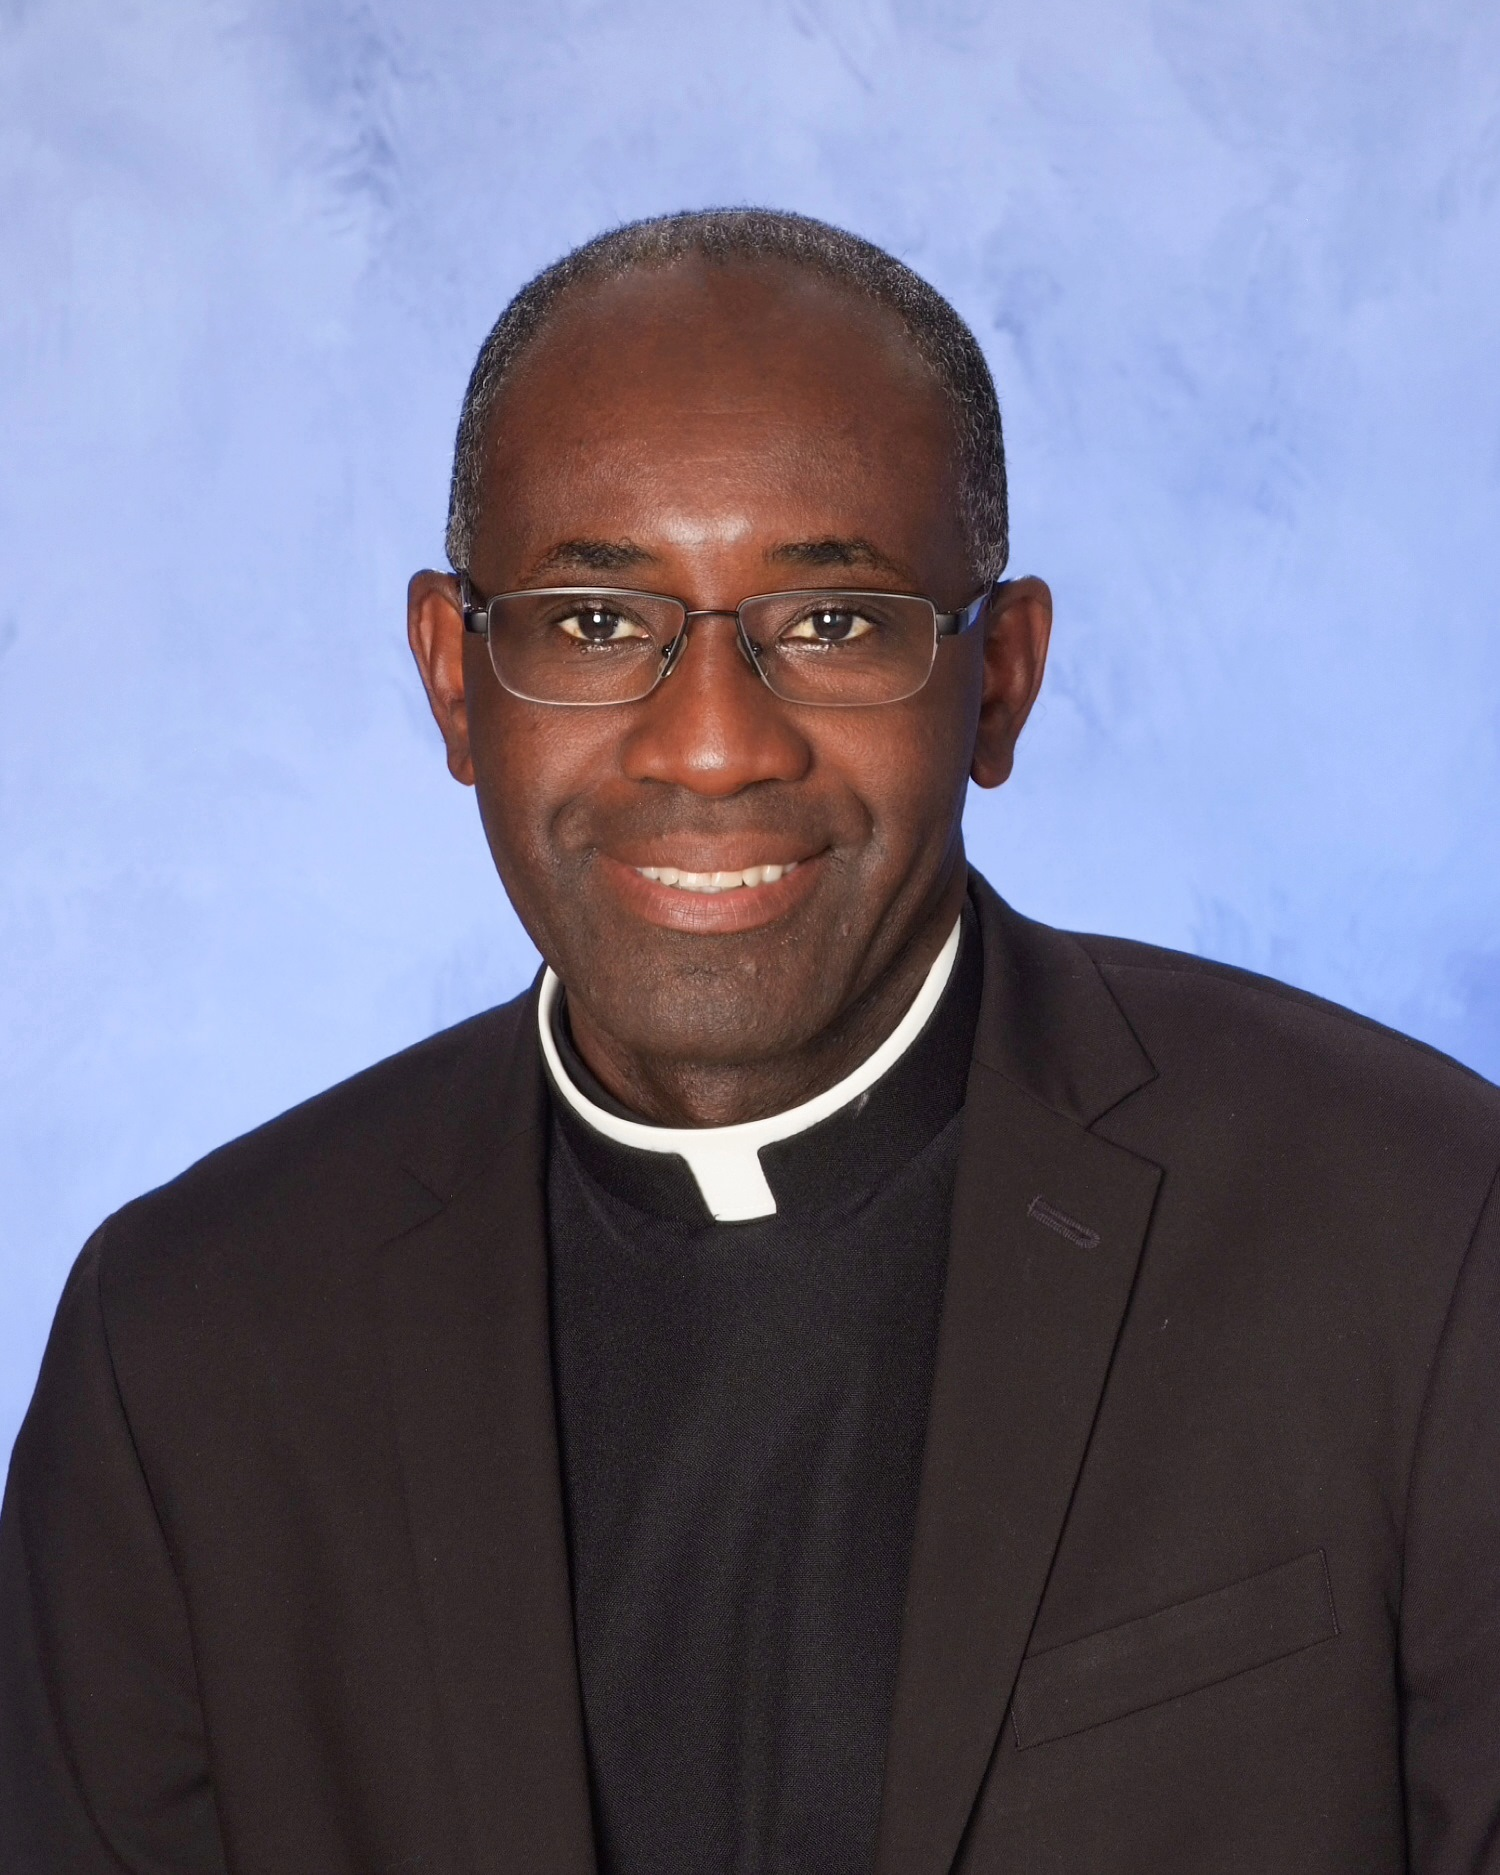 Rev. Nobert Jean-Pierre